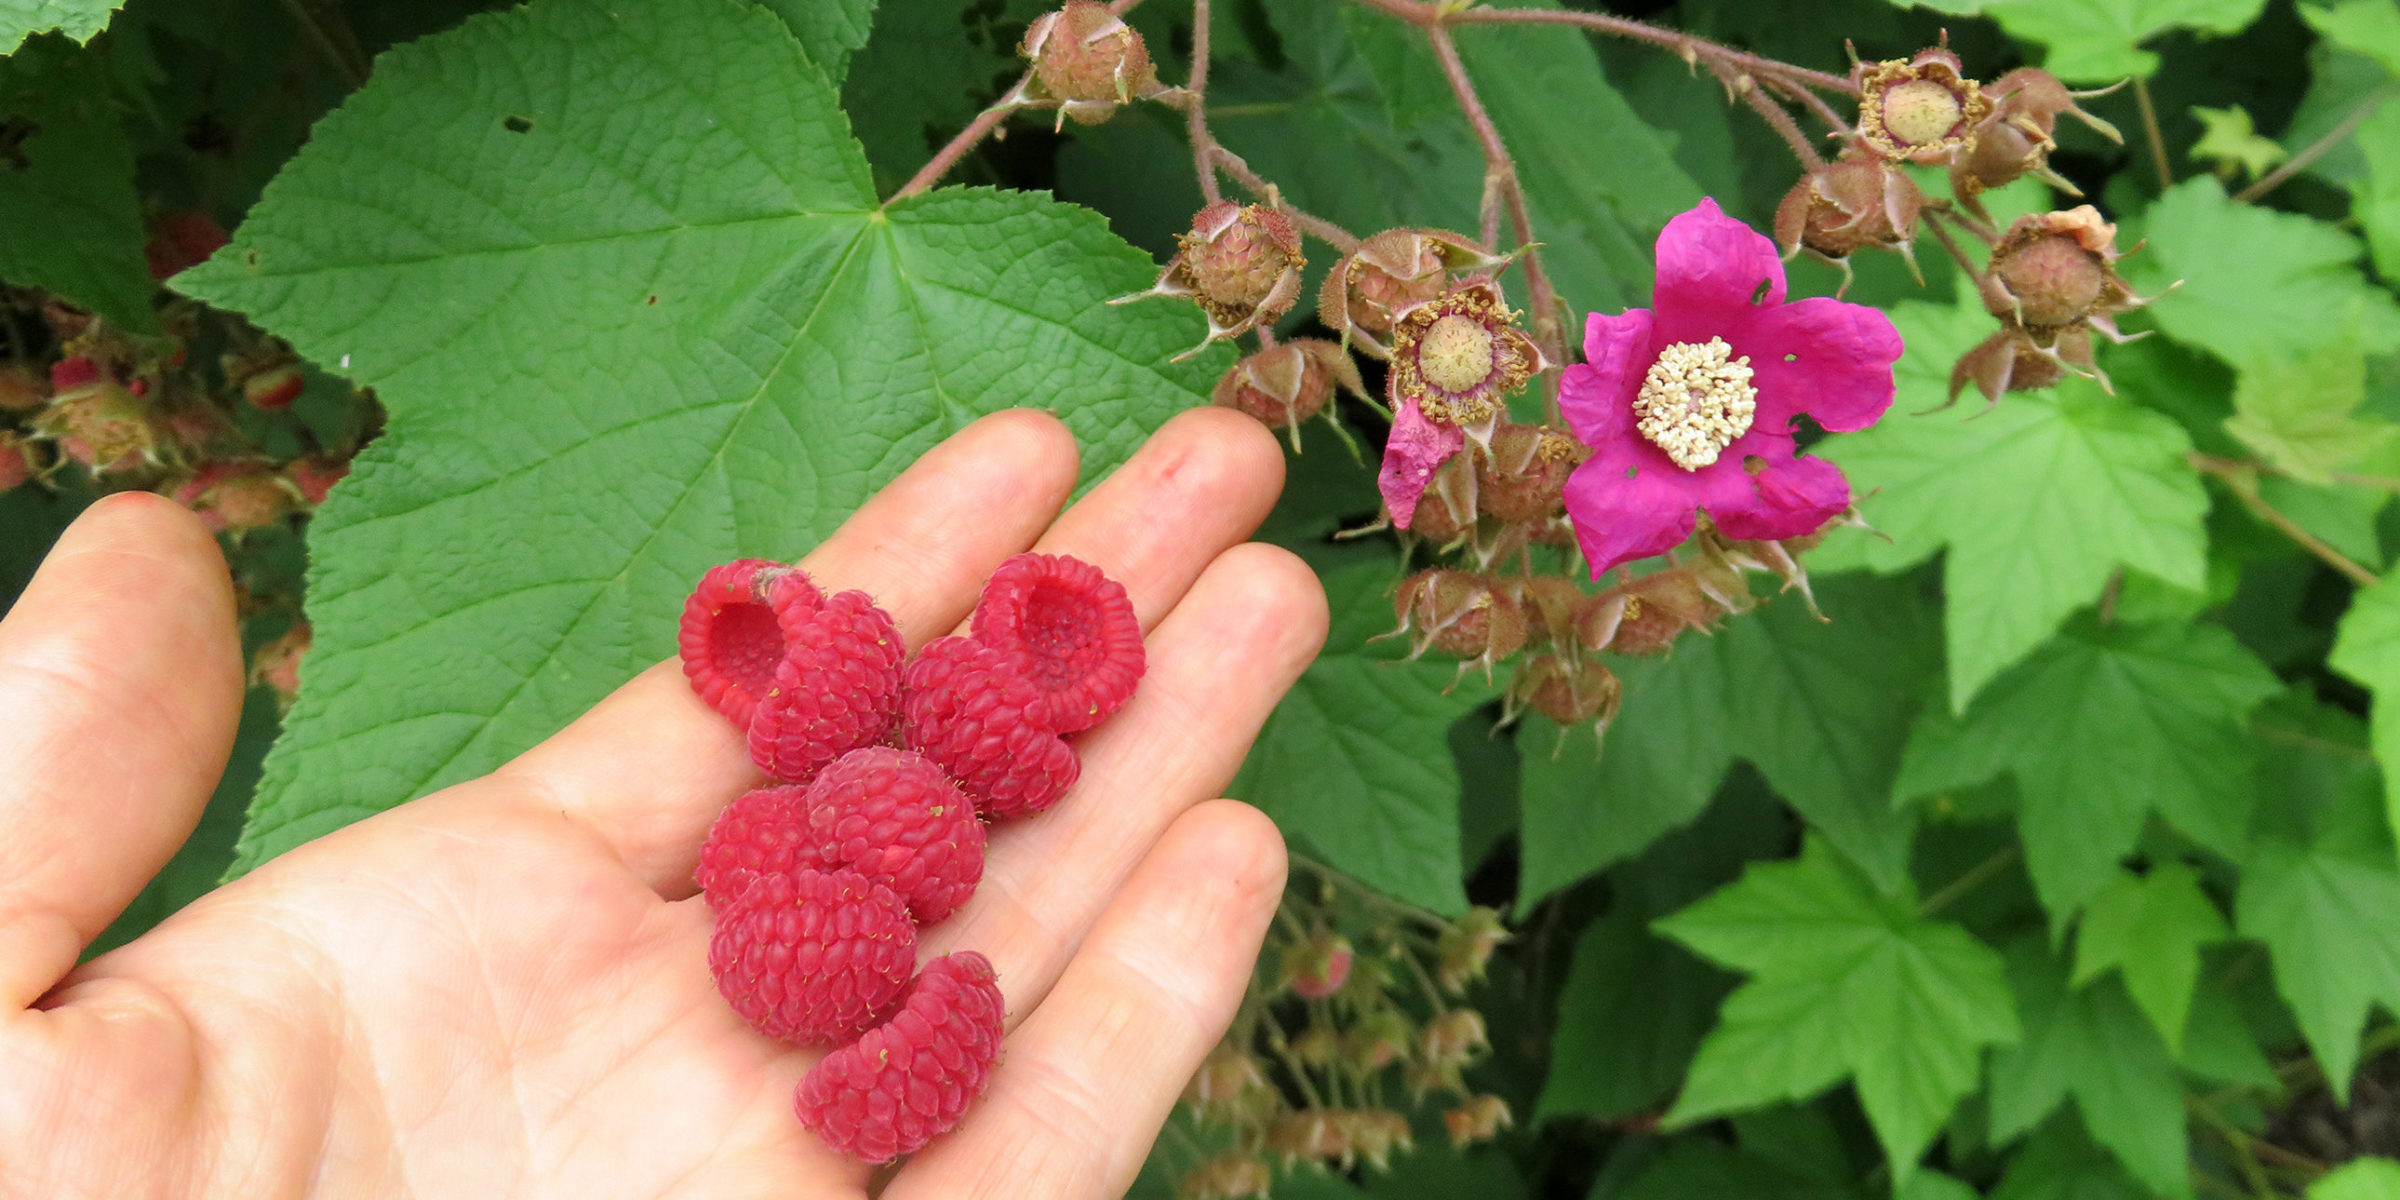 Picking A Handful Of Raspberries During A Site Visit To One Of Our Land Use Planning Clients.